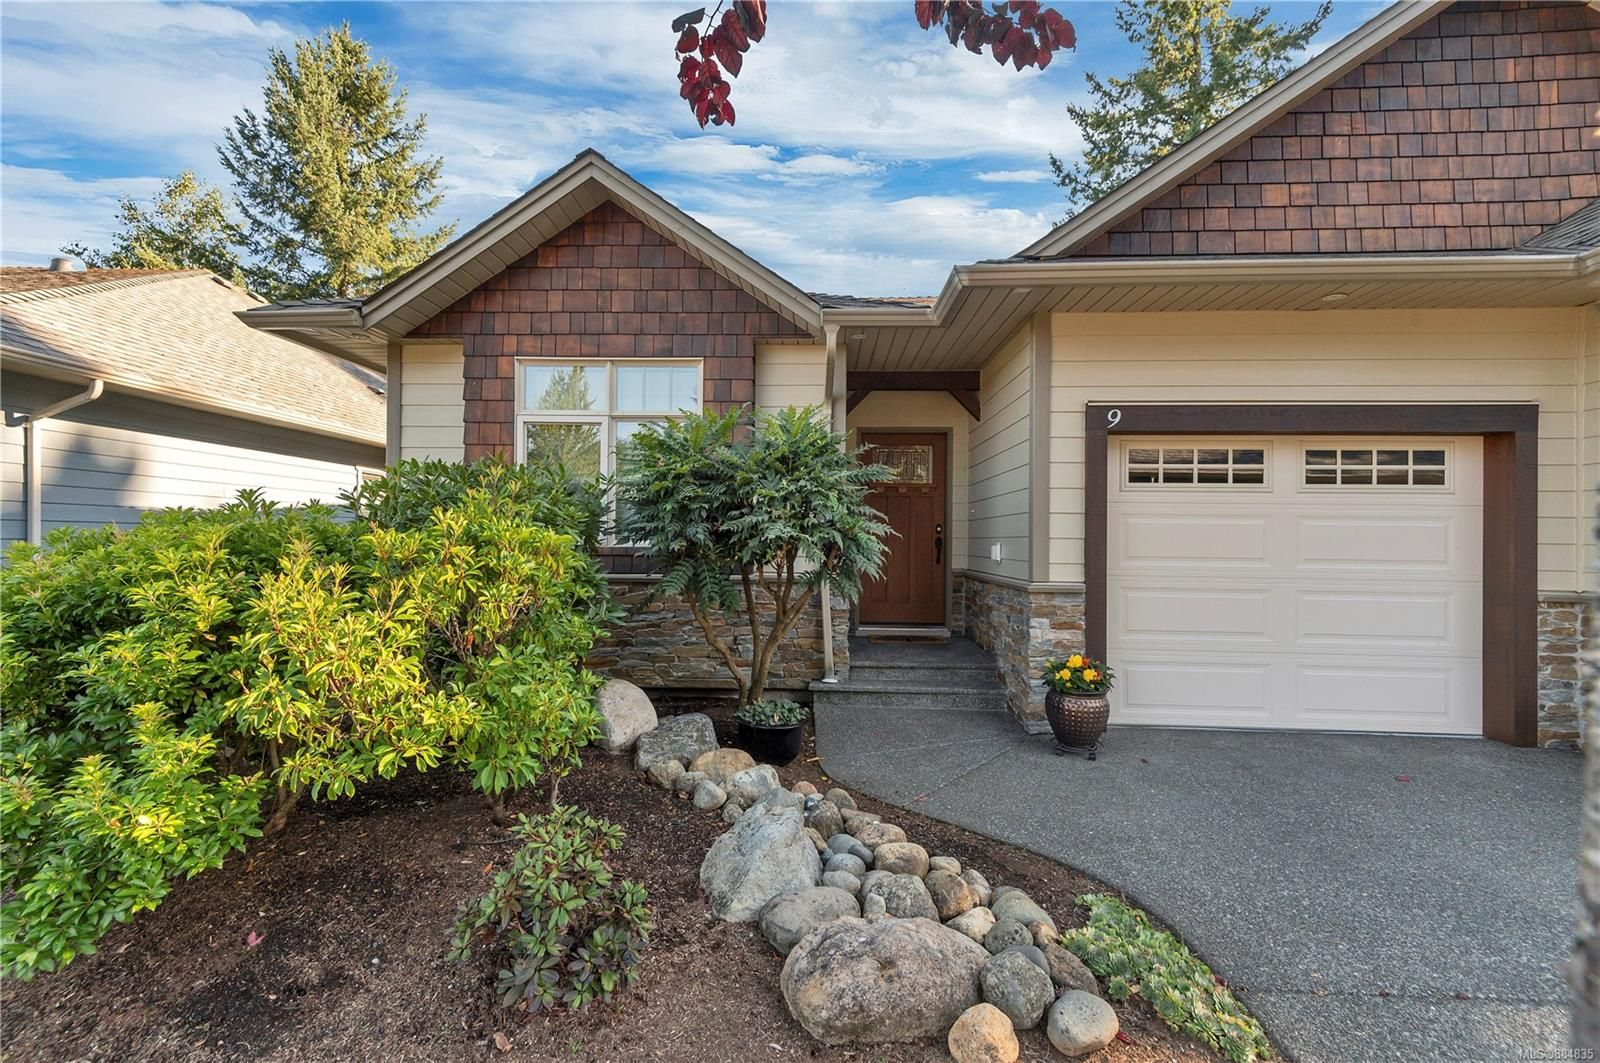 Main Photo: 9 48 N McPhedran Rd in : CR Campbell River Central Row/Townhouse for sale (Campbell River)  : MLS®# 884835